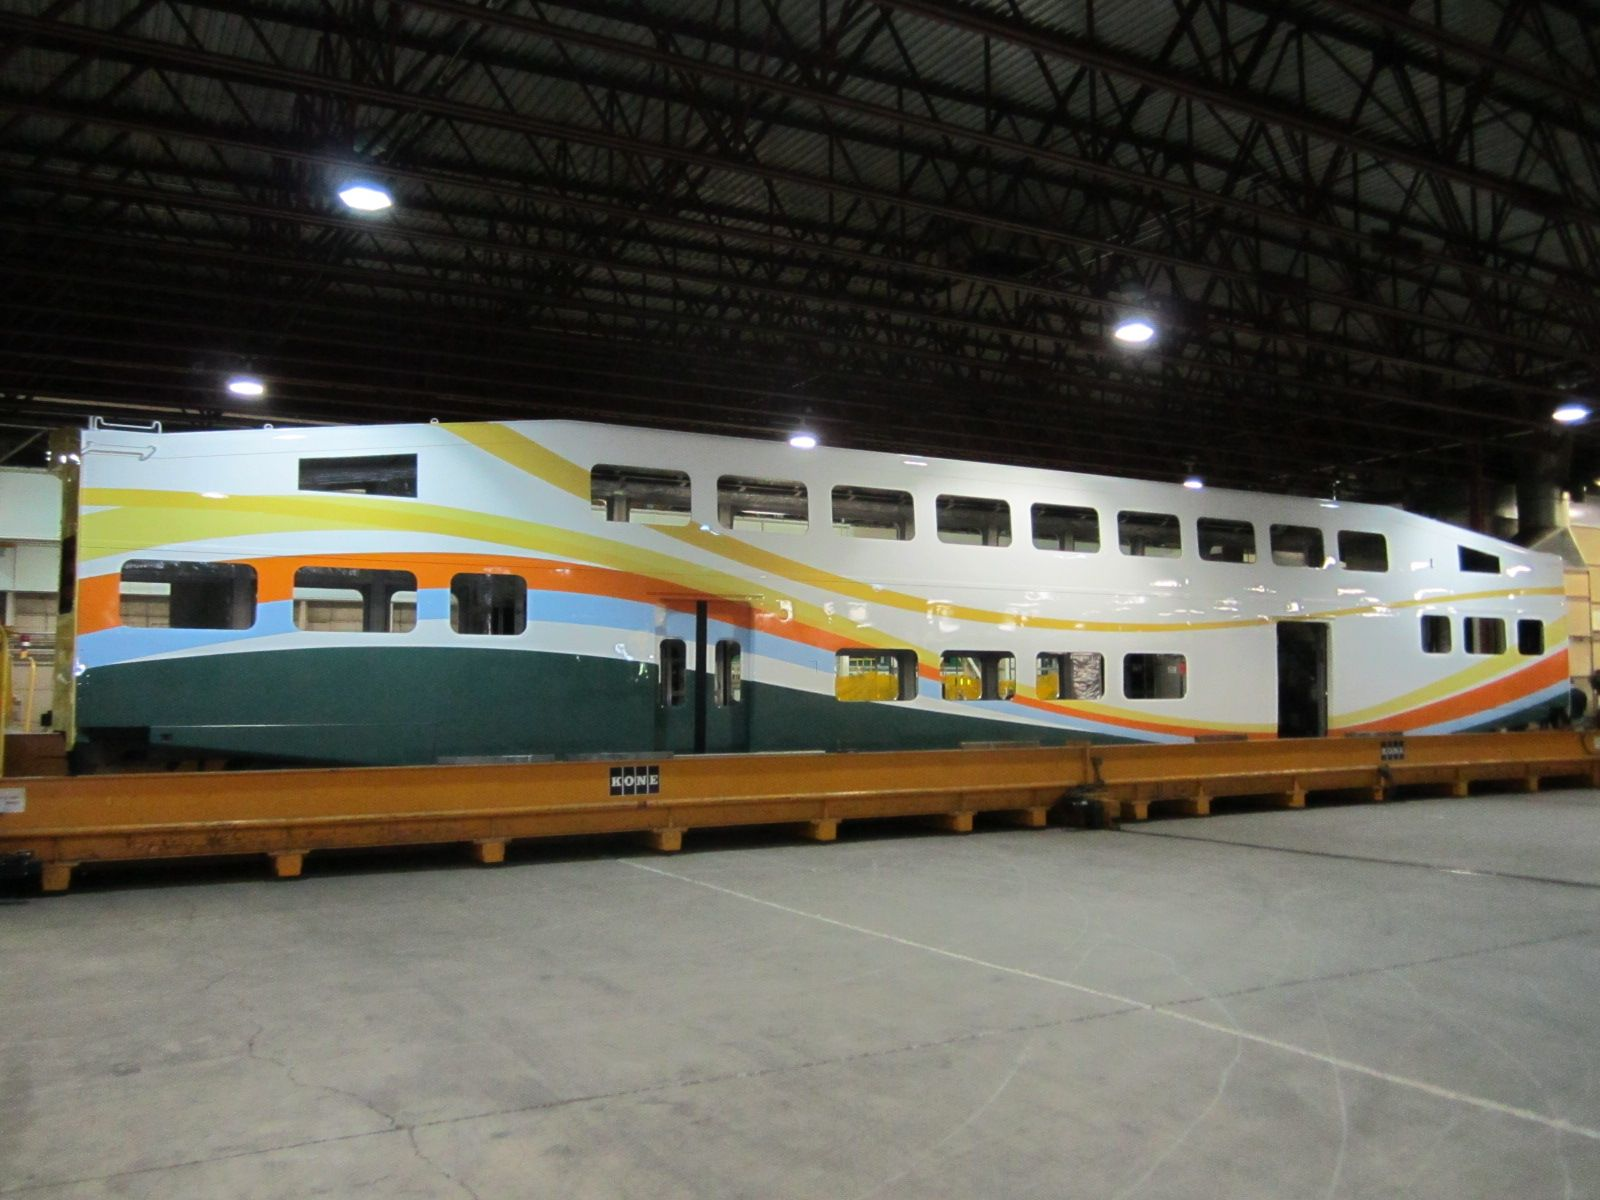 sunrail trains will be painted in bright vibrant colors that